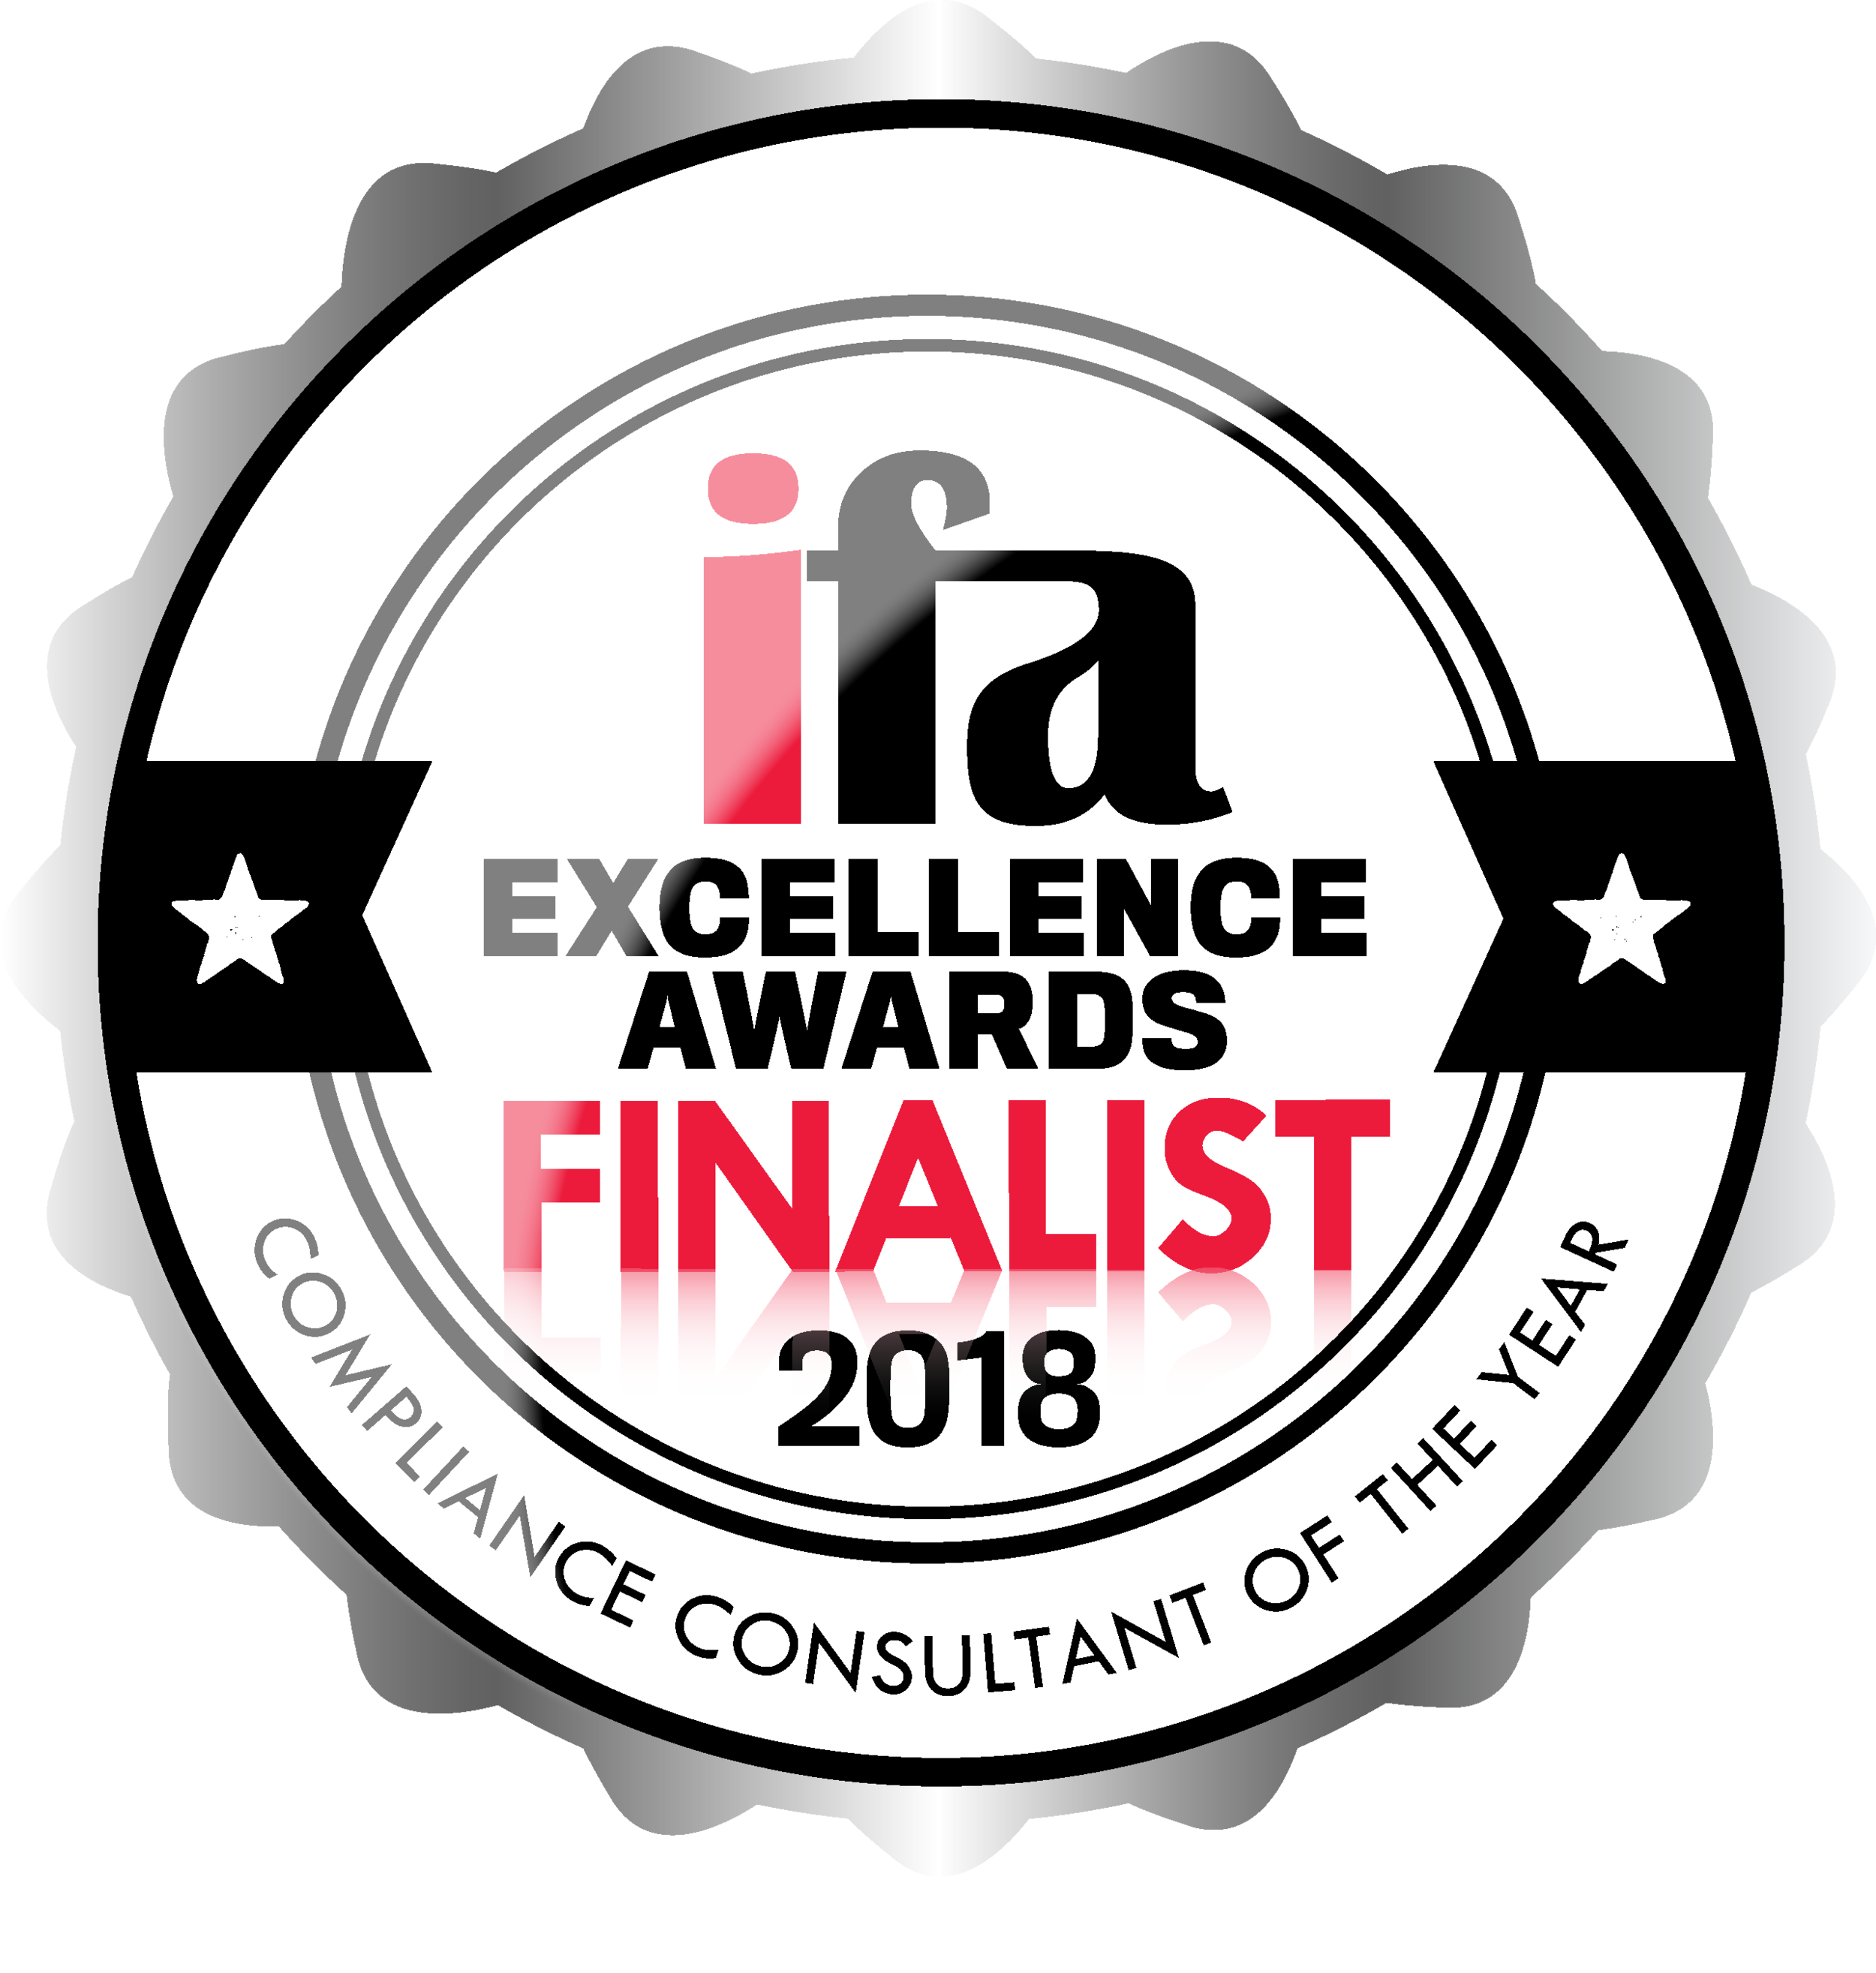 IFA_SEAL_2018_FINALIST_Compliance Consultant of the Year (1).png